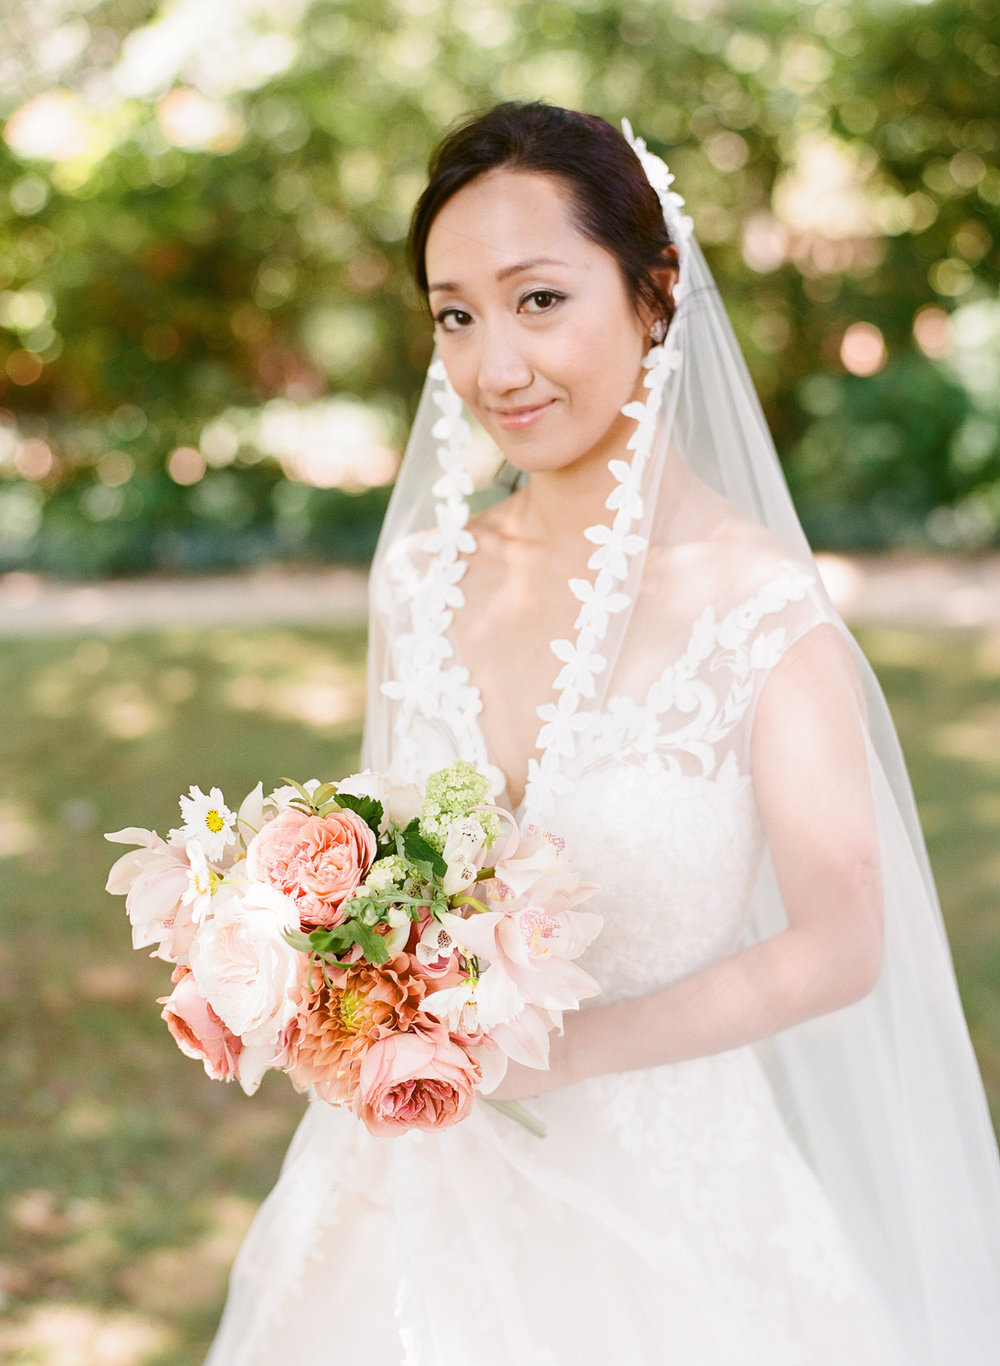 Wanxin_Paul_Wedding(117of164).jpg